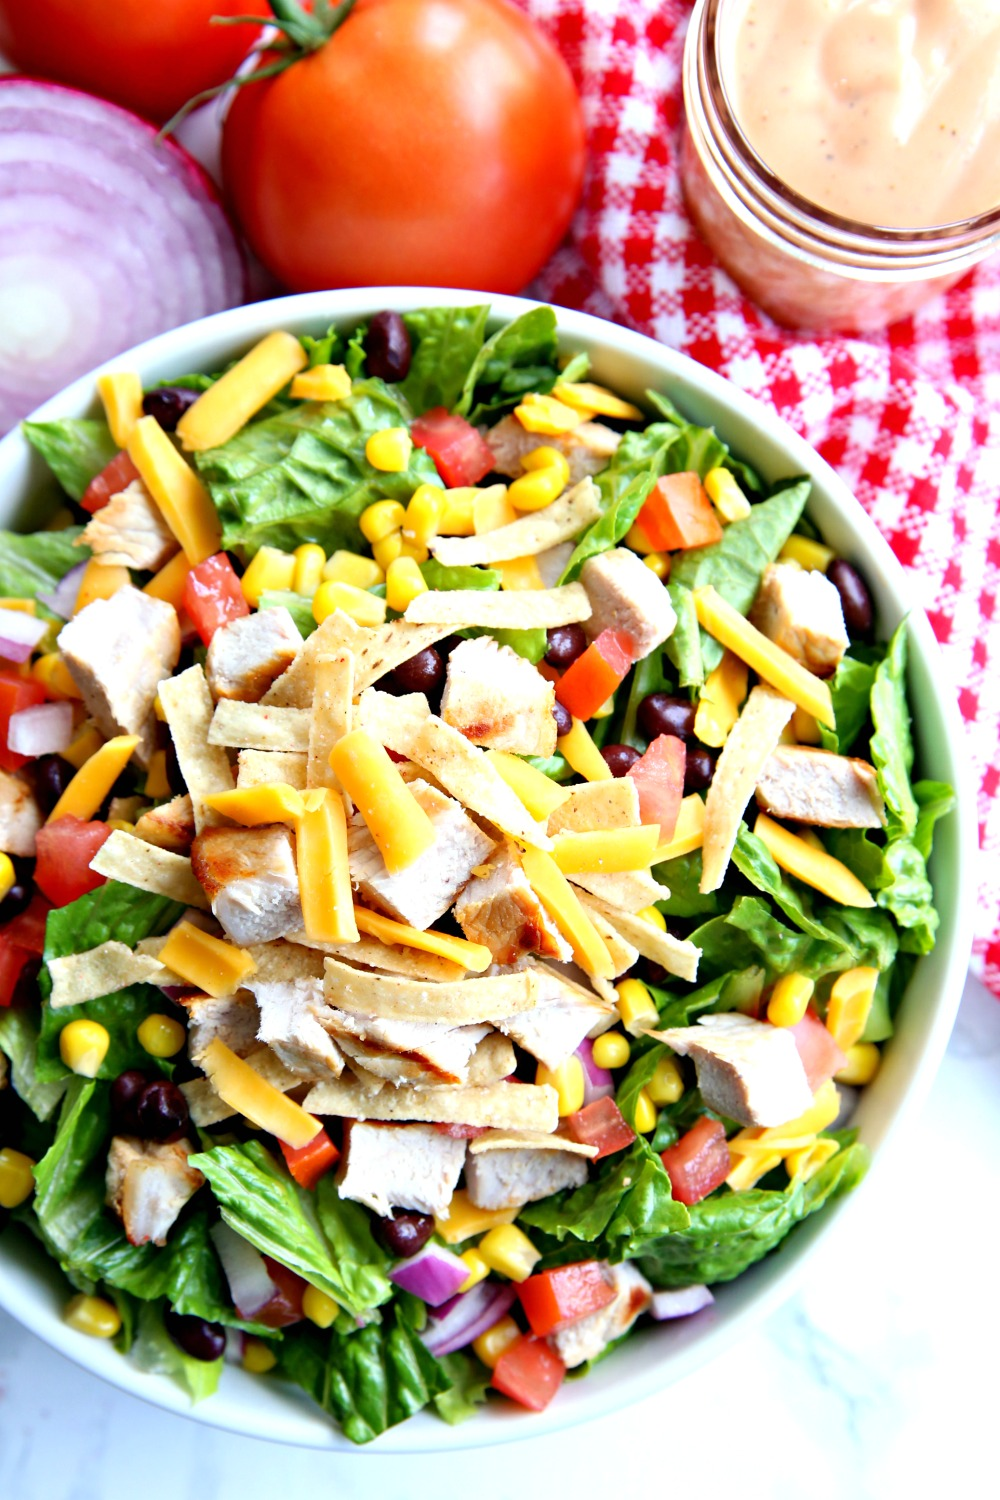 BBQ Chopped Salad topped with fresh veggies, black beans, and grilled pork chops. Serve with BBQ ranch dressing on the side.